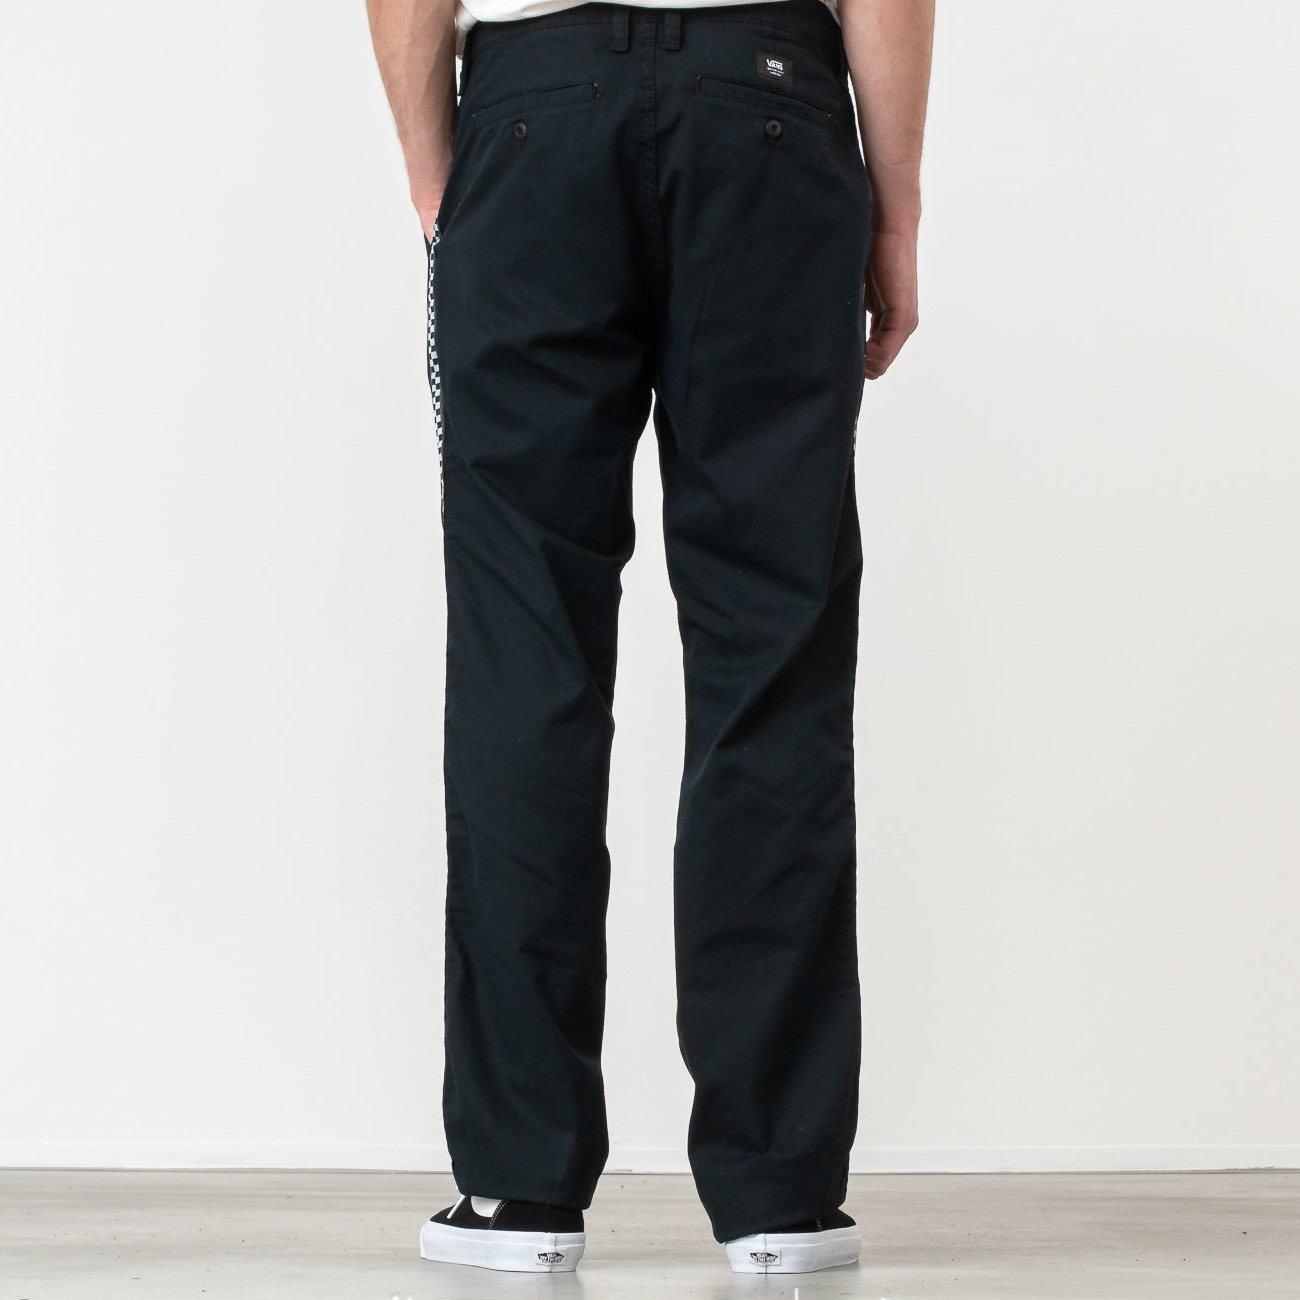 Vans Authentic Chino Pro Taped Pant Black/ Checkerboard